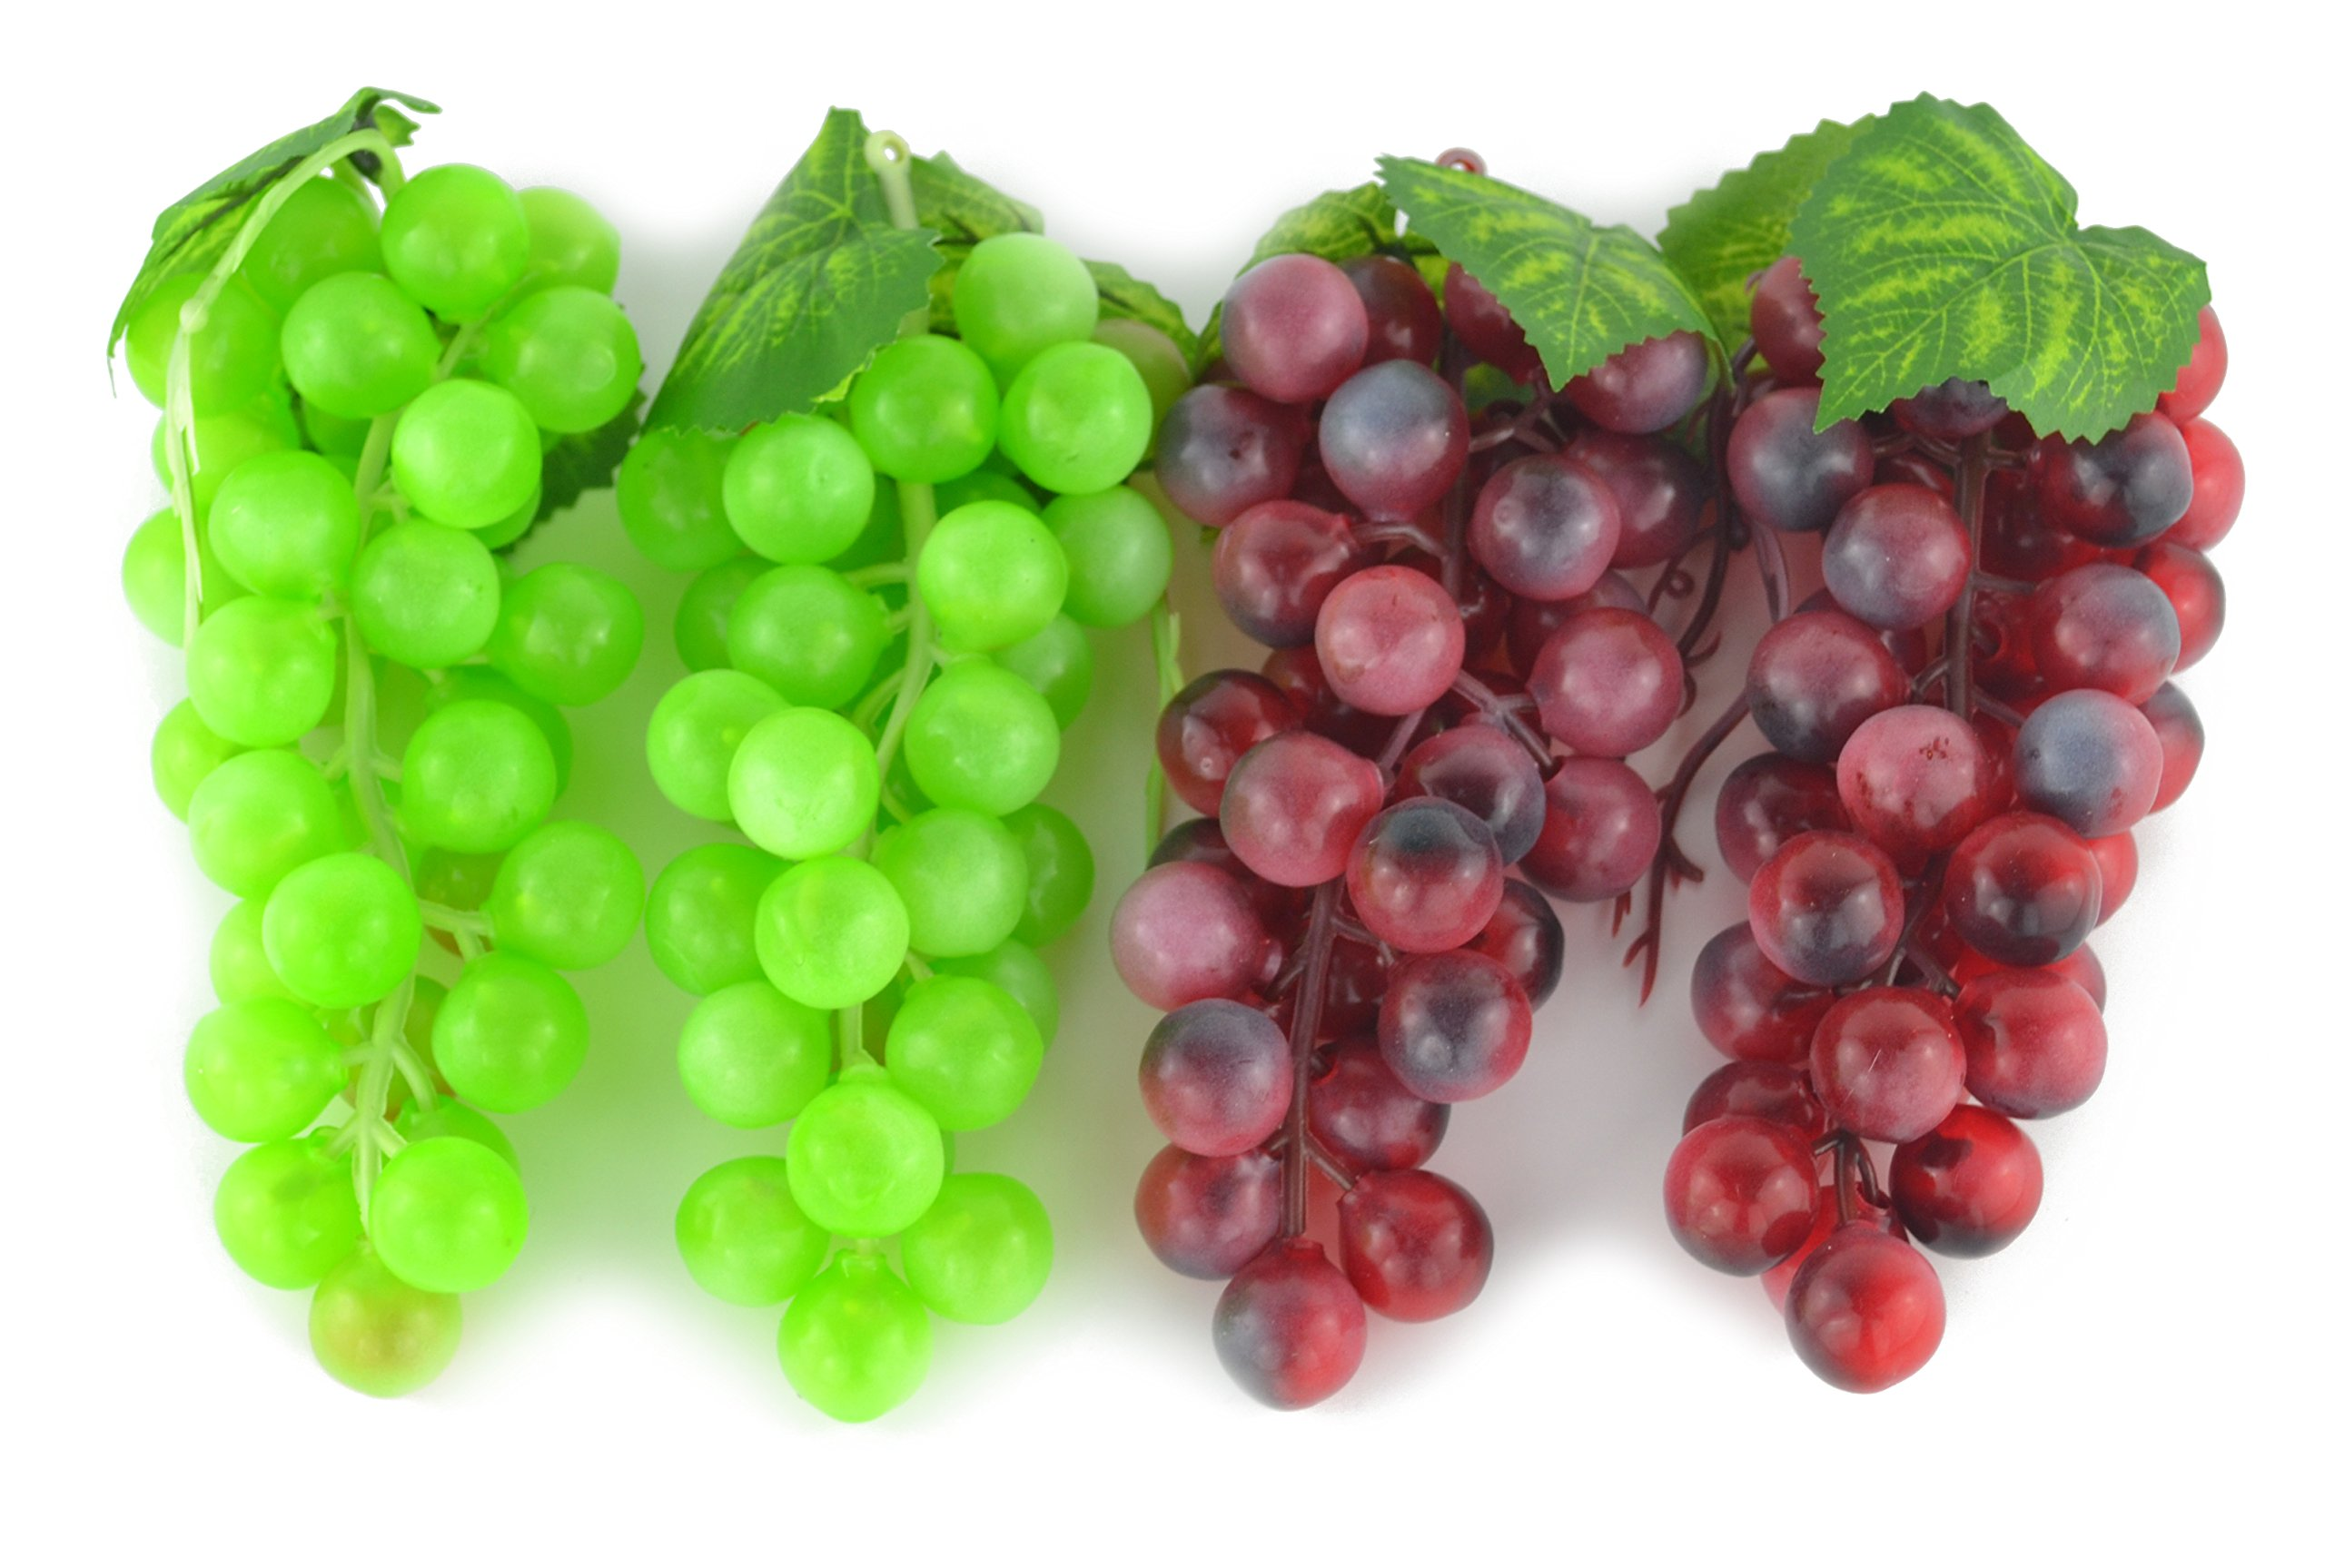 SAMYO-4-Bunches-of-Artificial-Green-Purple-Grape-Cluster-Simulation-Fake-Fruit-Home-House-Kitchen-Party-Decoration-Lifelike-2-Colors